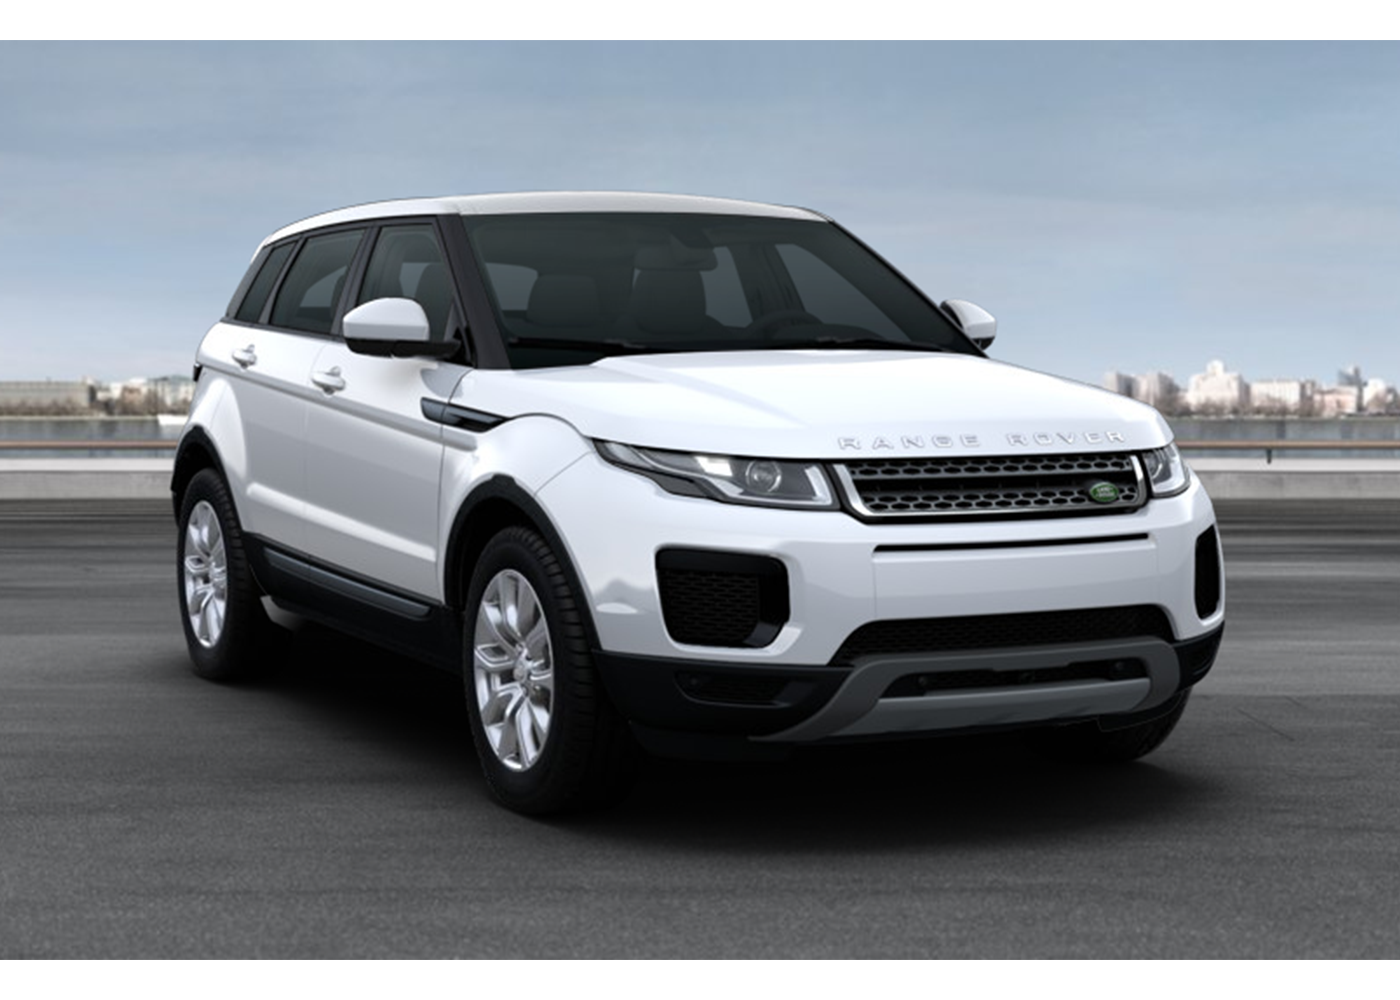 land rover range rover evoque 2 0 td4 150 cv 5p se fuji white km0 a soli 36150 su miacar 75ykg. Black Bedroom Furniture Sets. Home Design Ideas